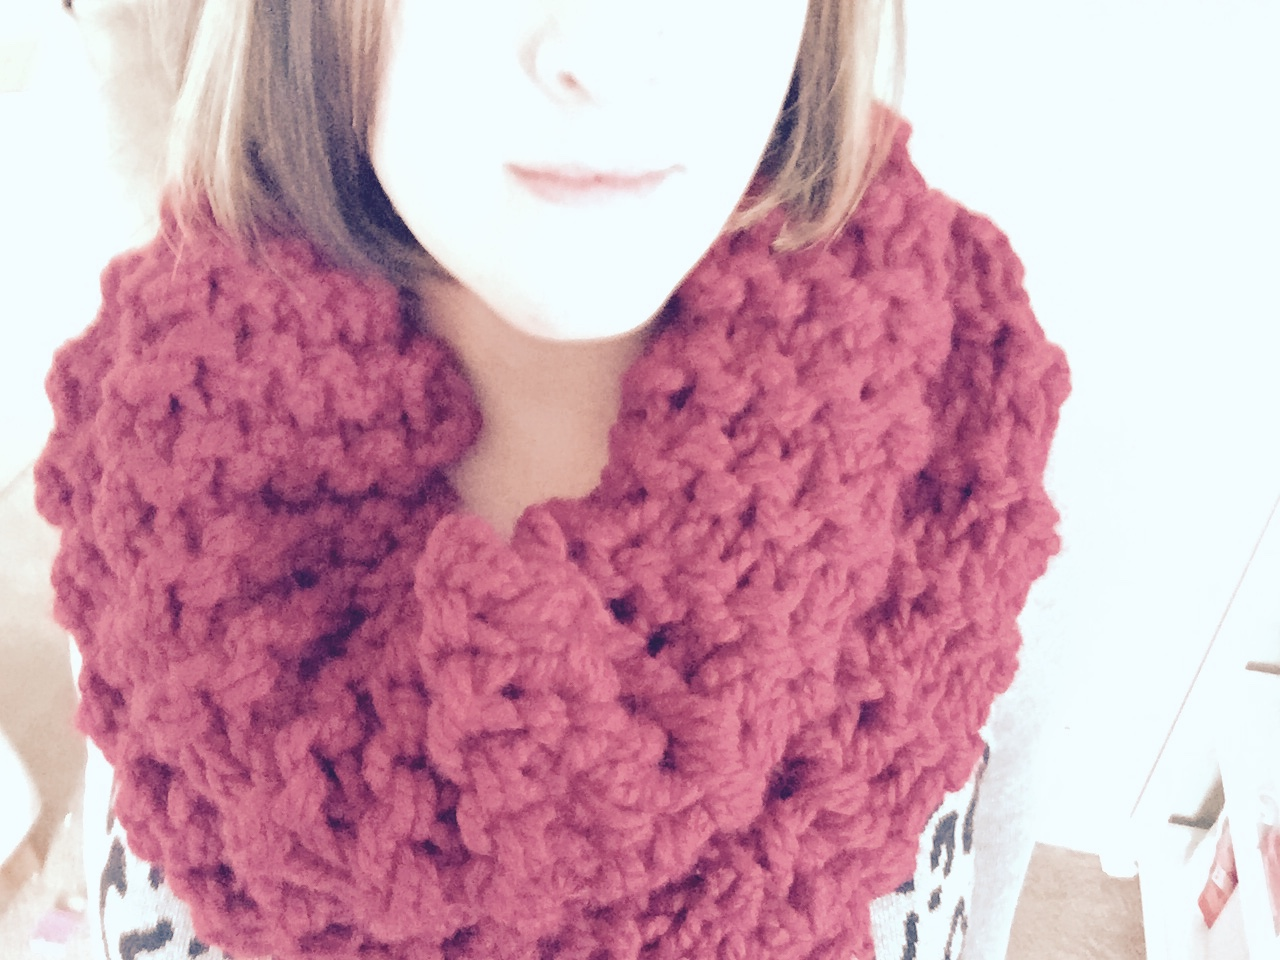 Knitting Pattern For Outlander Cowl : Outlander Inspired Knitted Cowl   Rockin the Dots